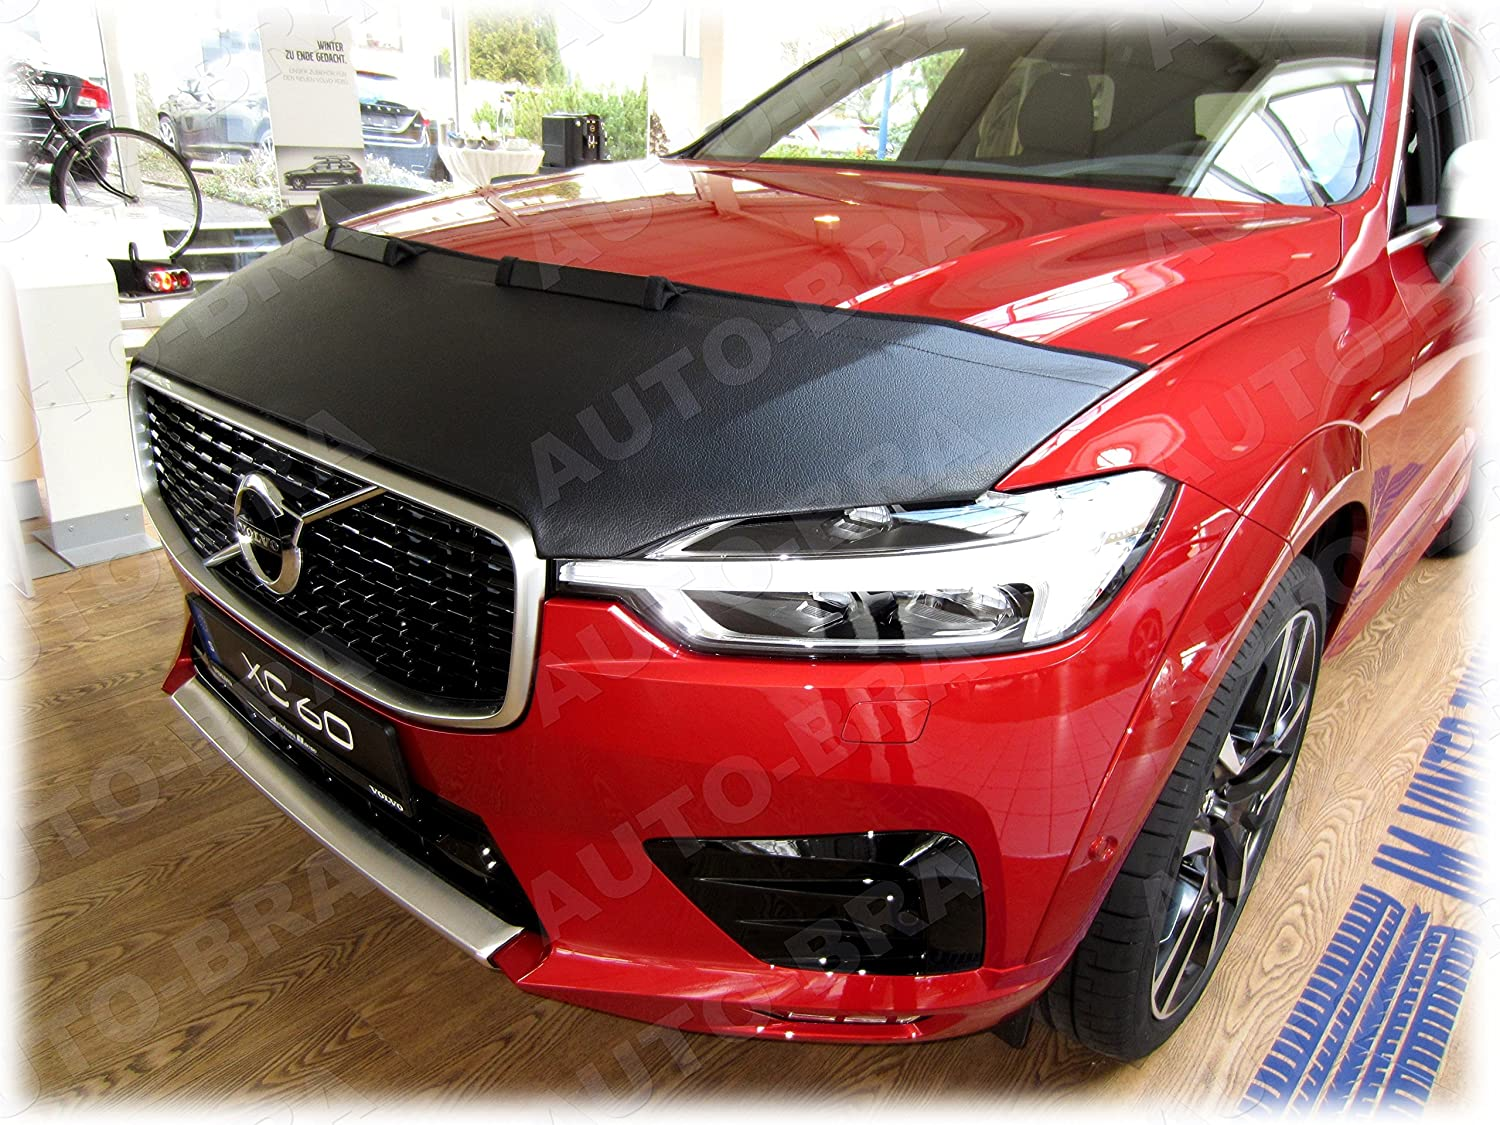 HOOD BRA Front End Nose Mask for XC40 since 2017 Bonnet Bra STONEGUARD PROTECTOR TUNING